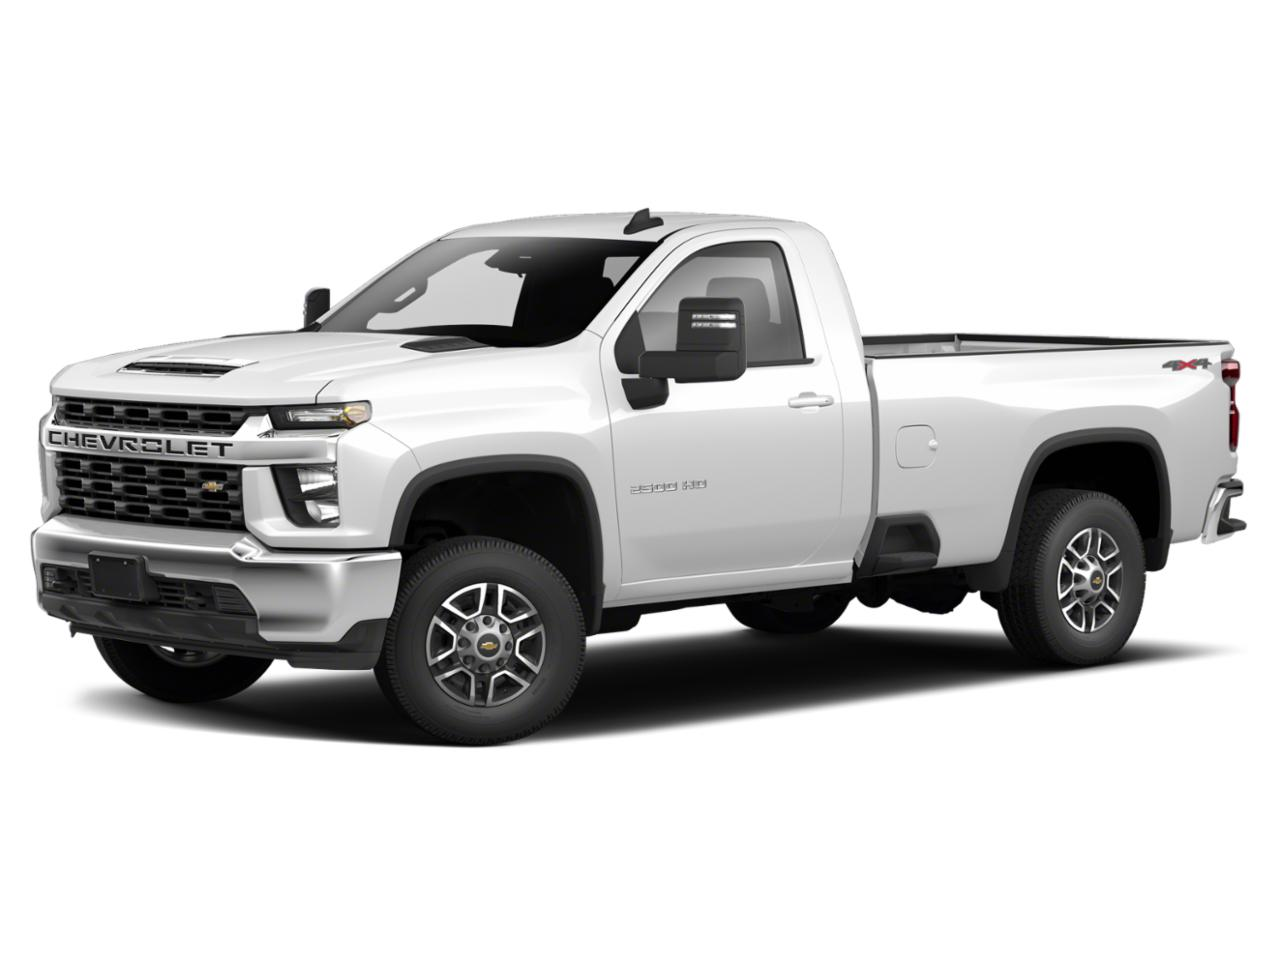 2020 Chevrolet Silverado 3500HD Vehicle Photo in Wakefield, MA 01880